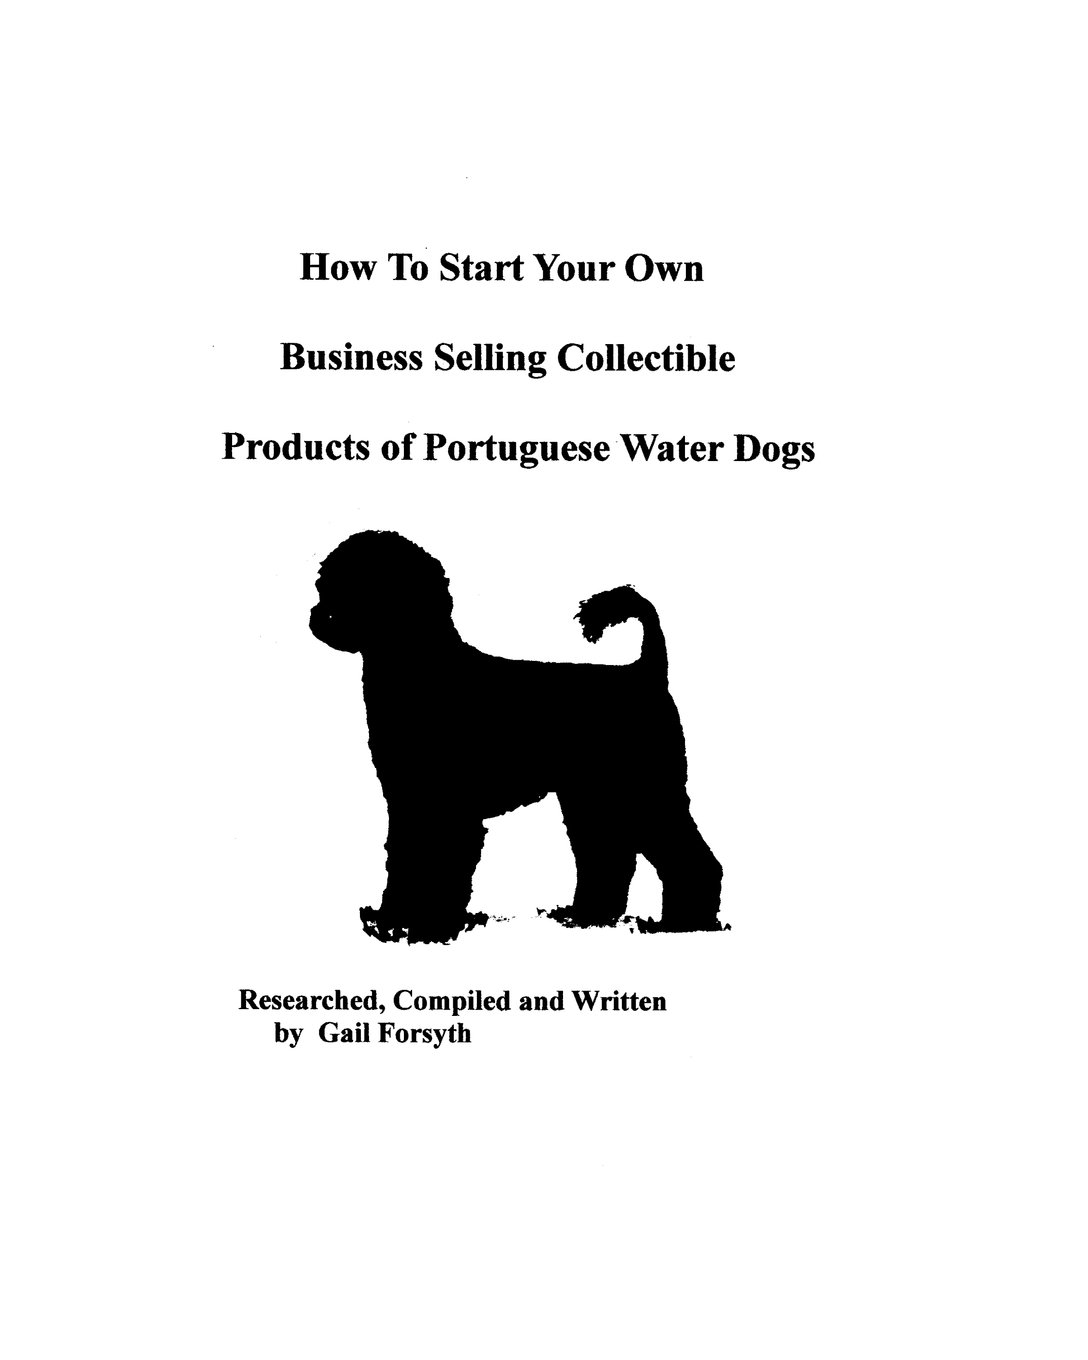 How To Start Your Own Business Selling Collectible Products Of Portuguese Water Dogs ebook